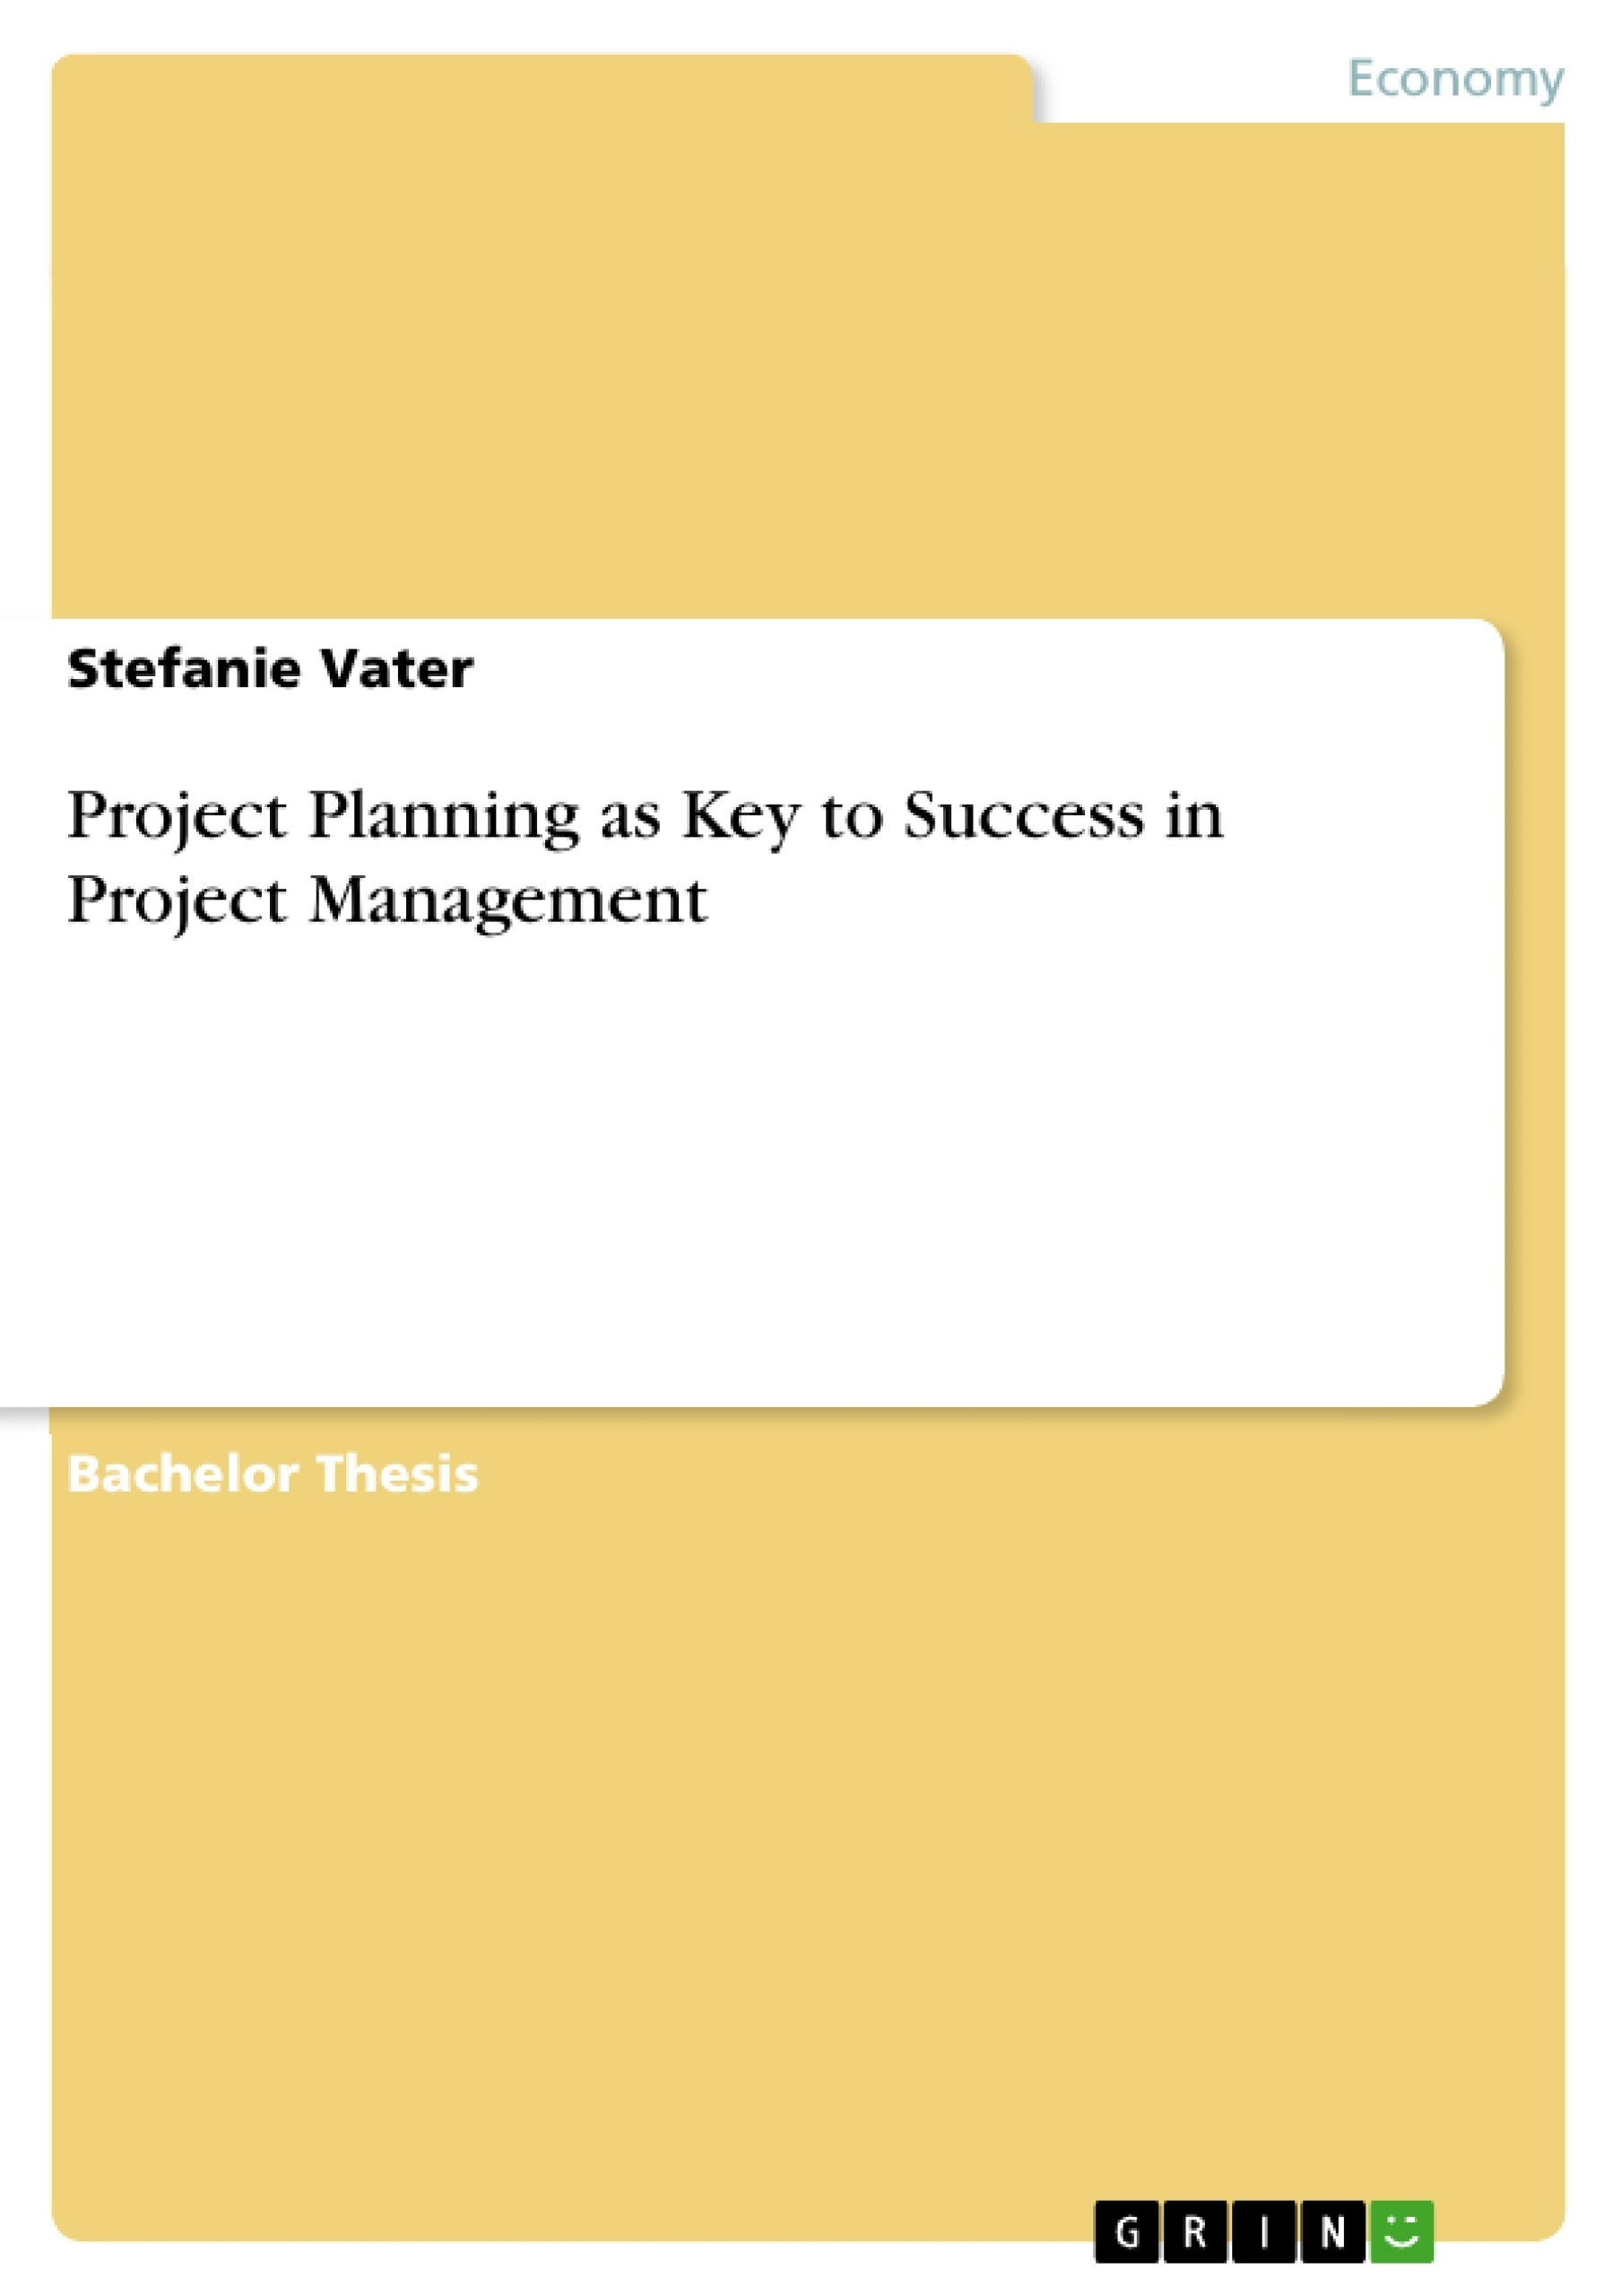 Title: Project Planning as Key to Success in Project Management